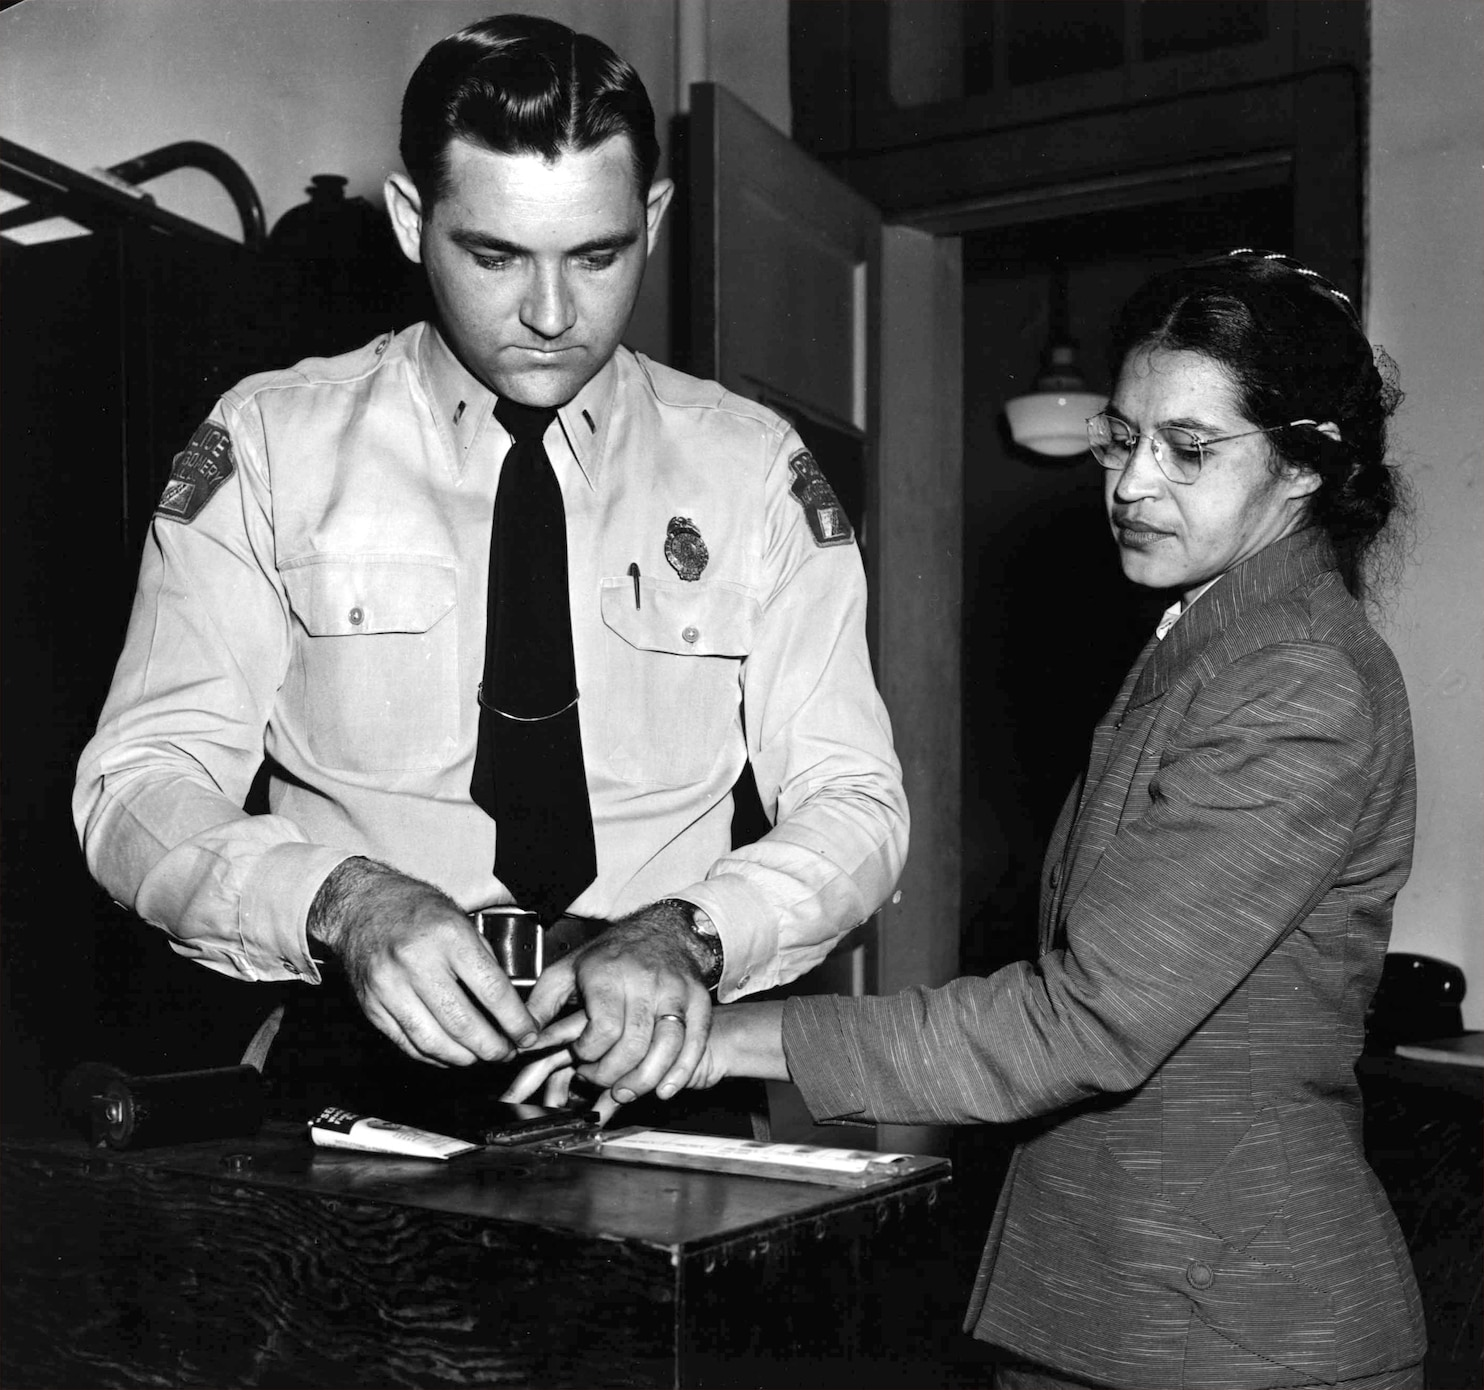 Rosa Parks Is The Name You Know Claudette Colvin Is A Name You Probably Should